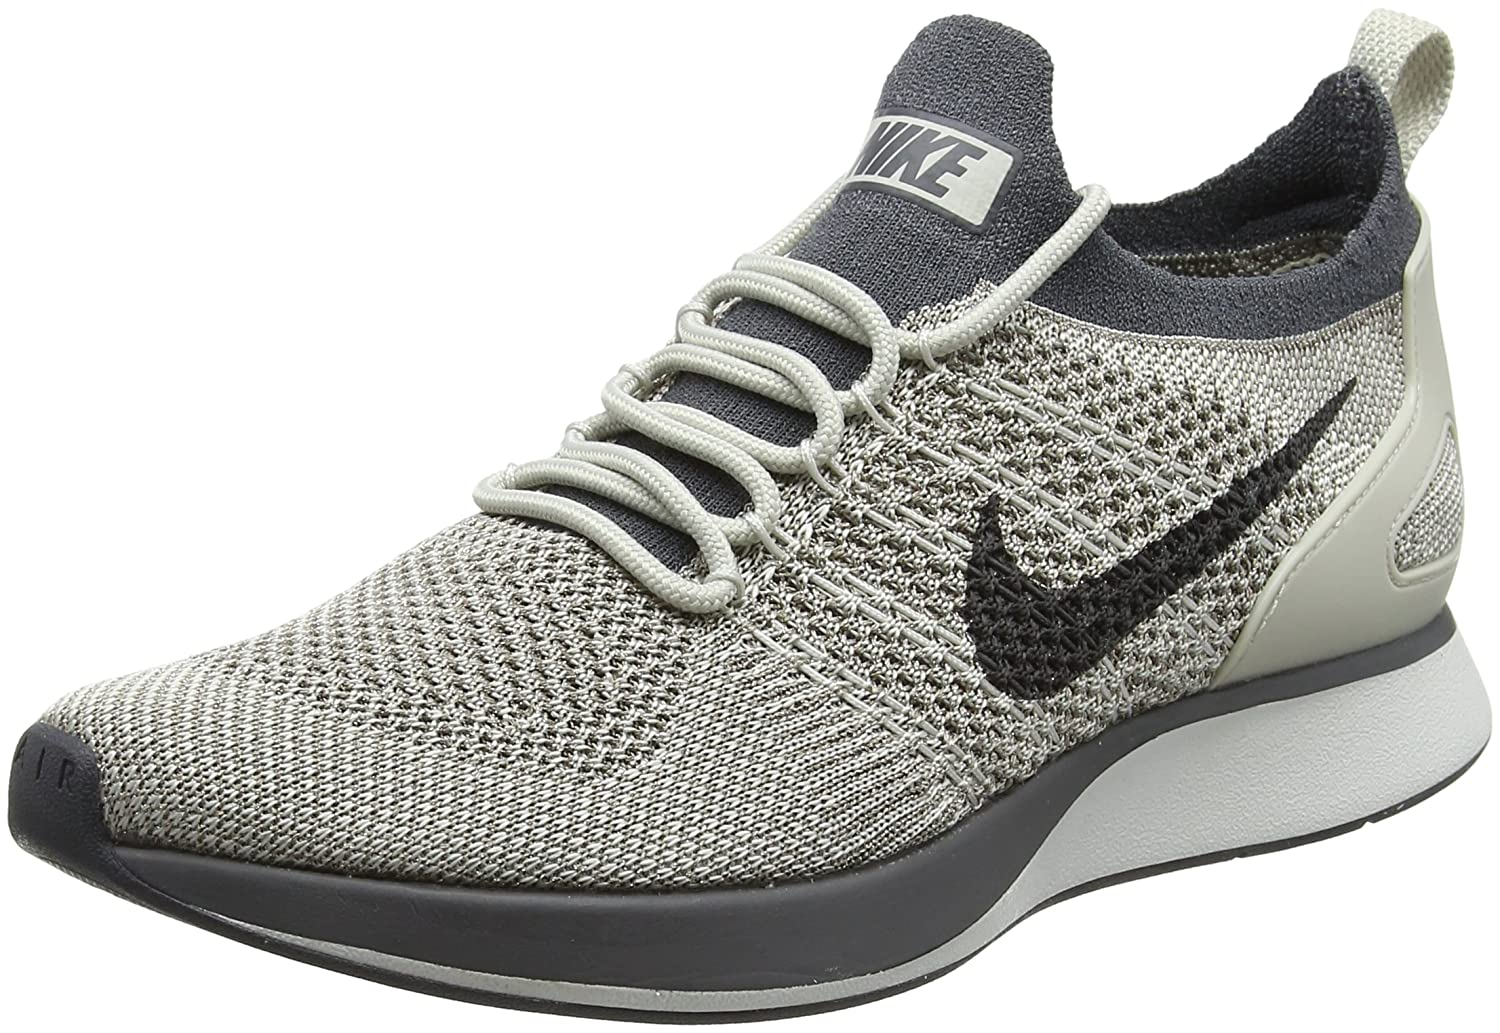 NIKE Womens Air Zoom Mariah Flyknit Racer Running Trainers Aa0521 Sneakers Shoes B0763RX6GN 5.5 B(M) US|Pale Grey / Dark Grey